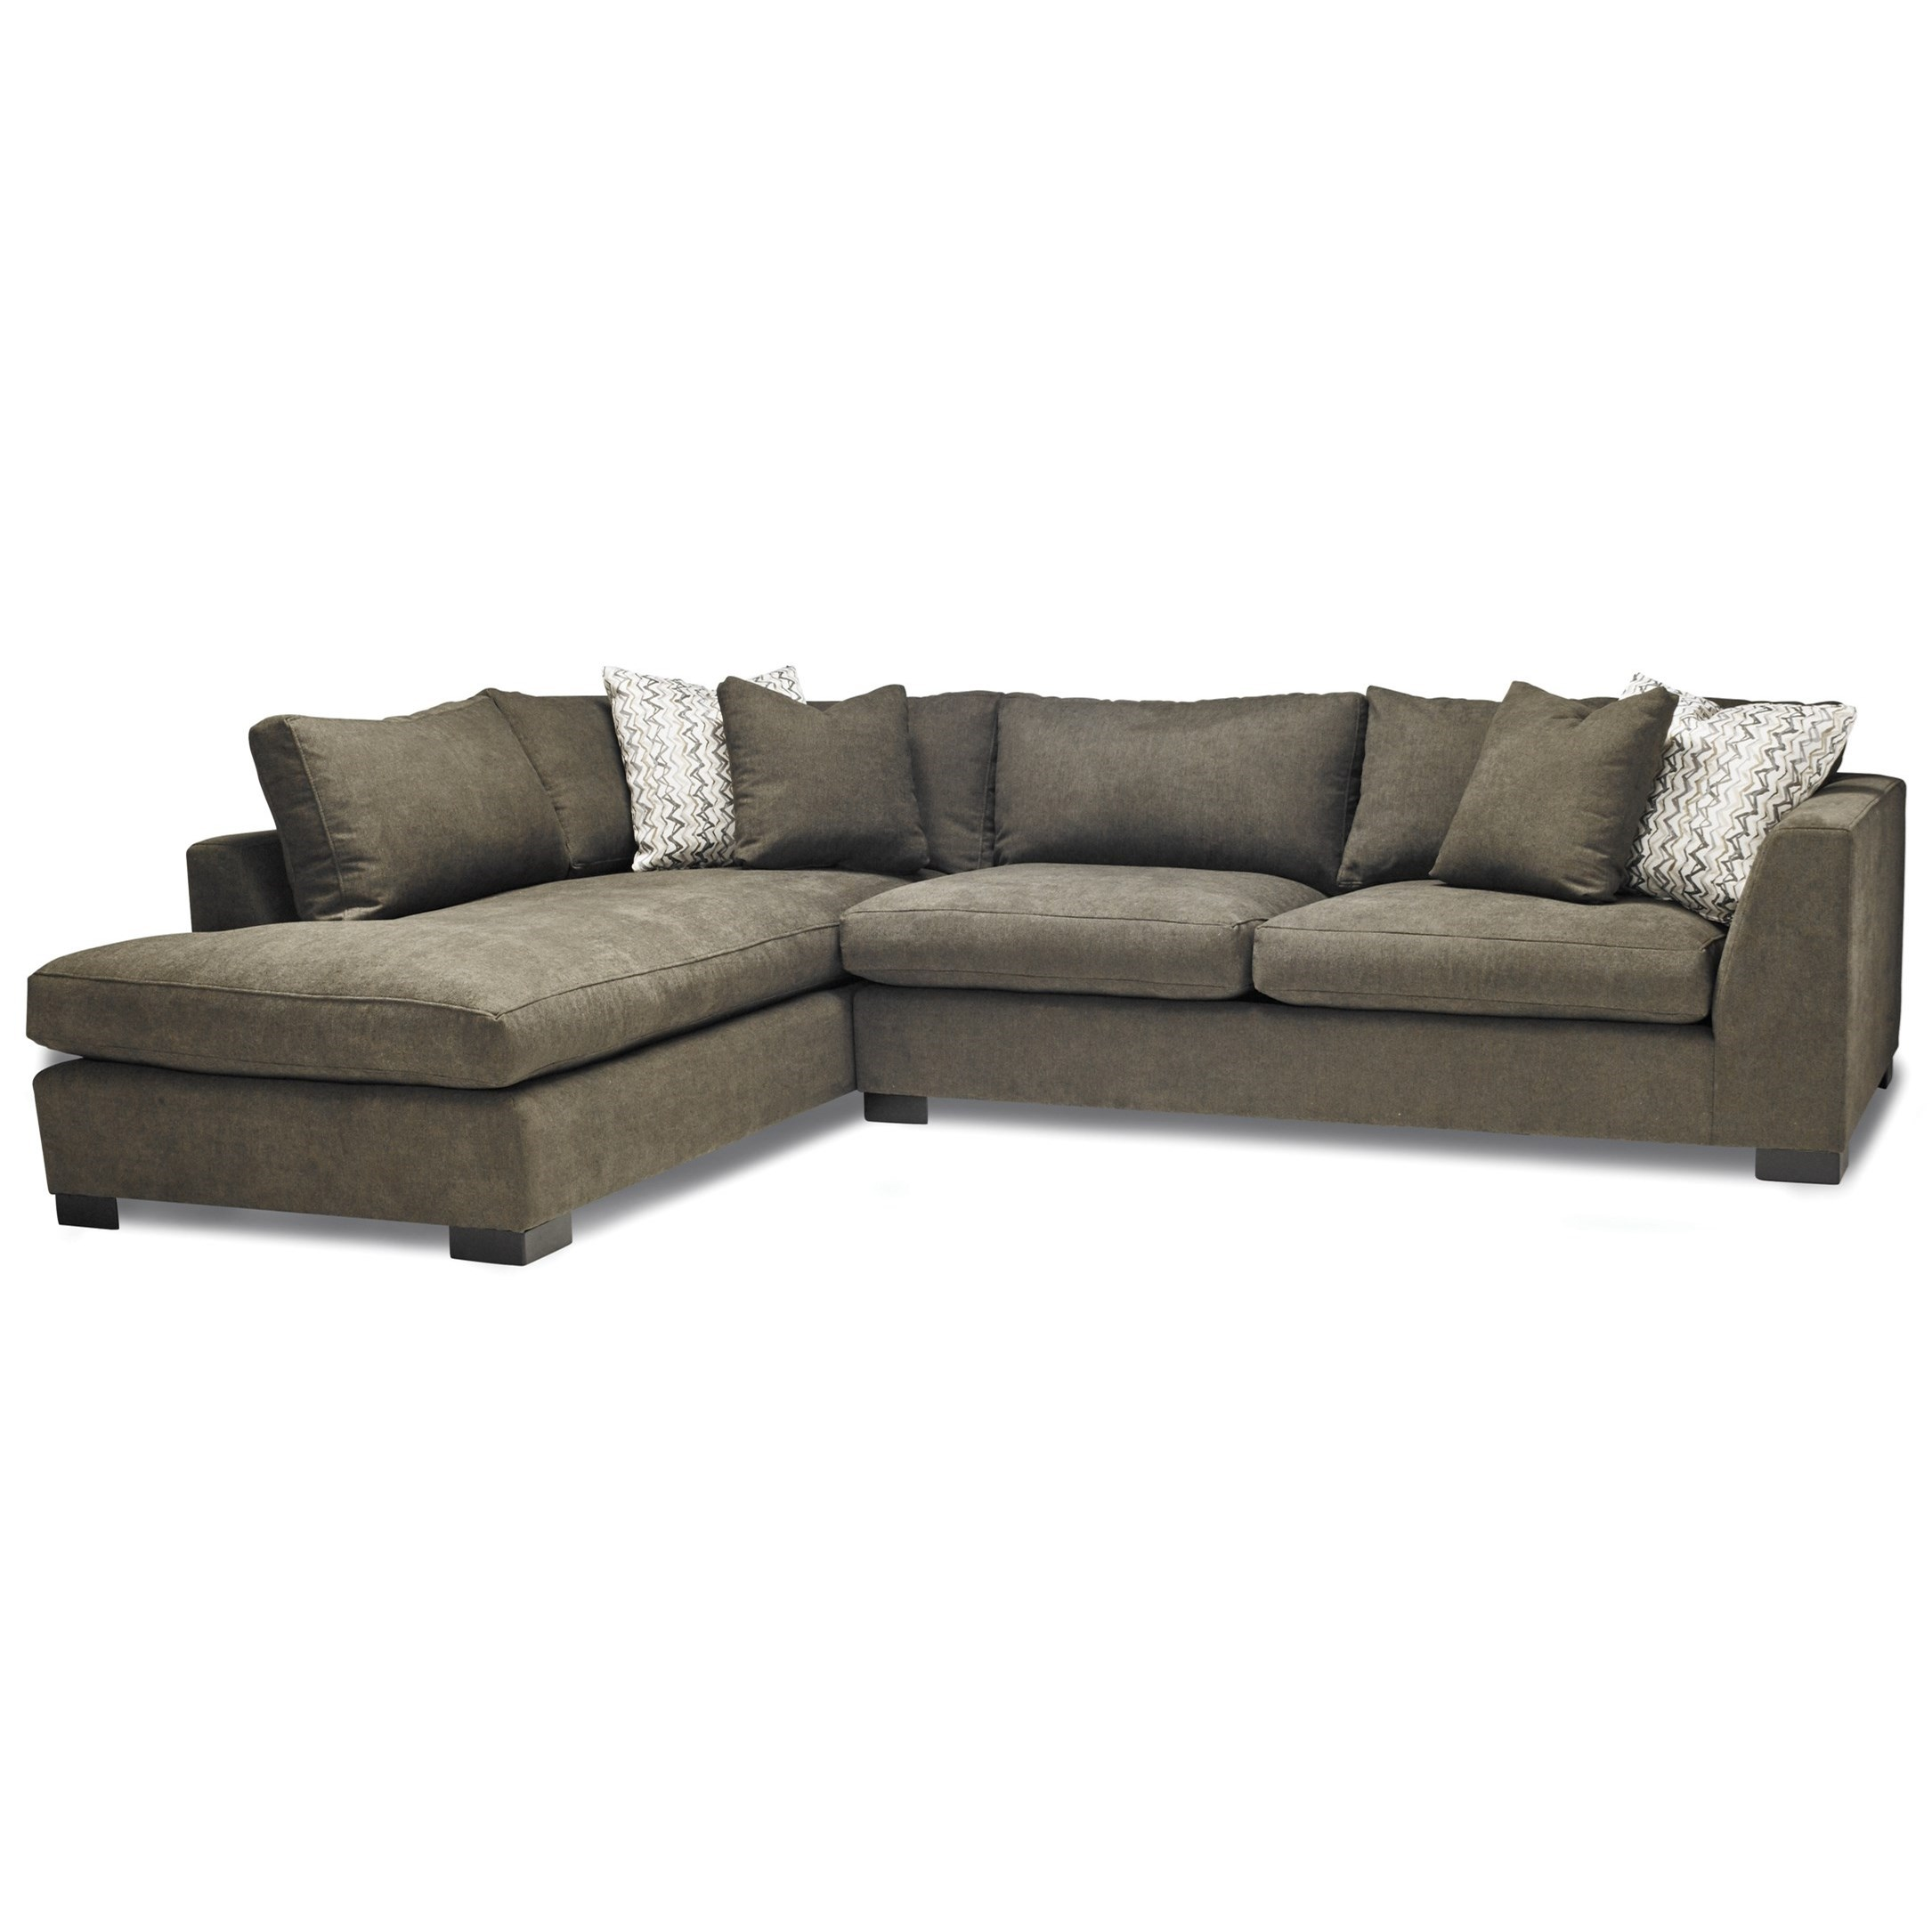 2 pc laf sectional sofa dfs wrap fabric corner 2099 casual two piece with chaise